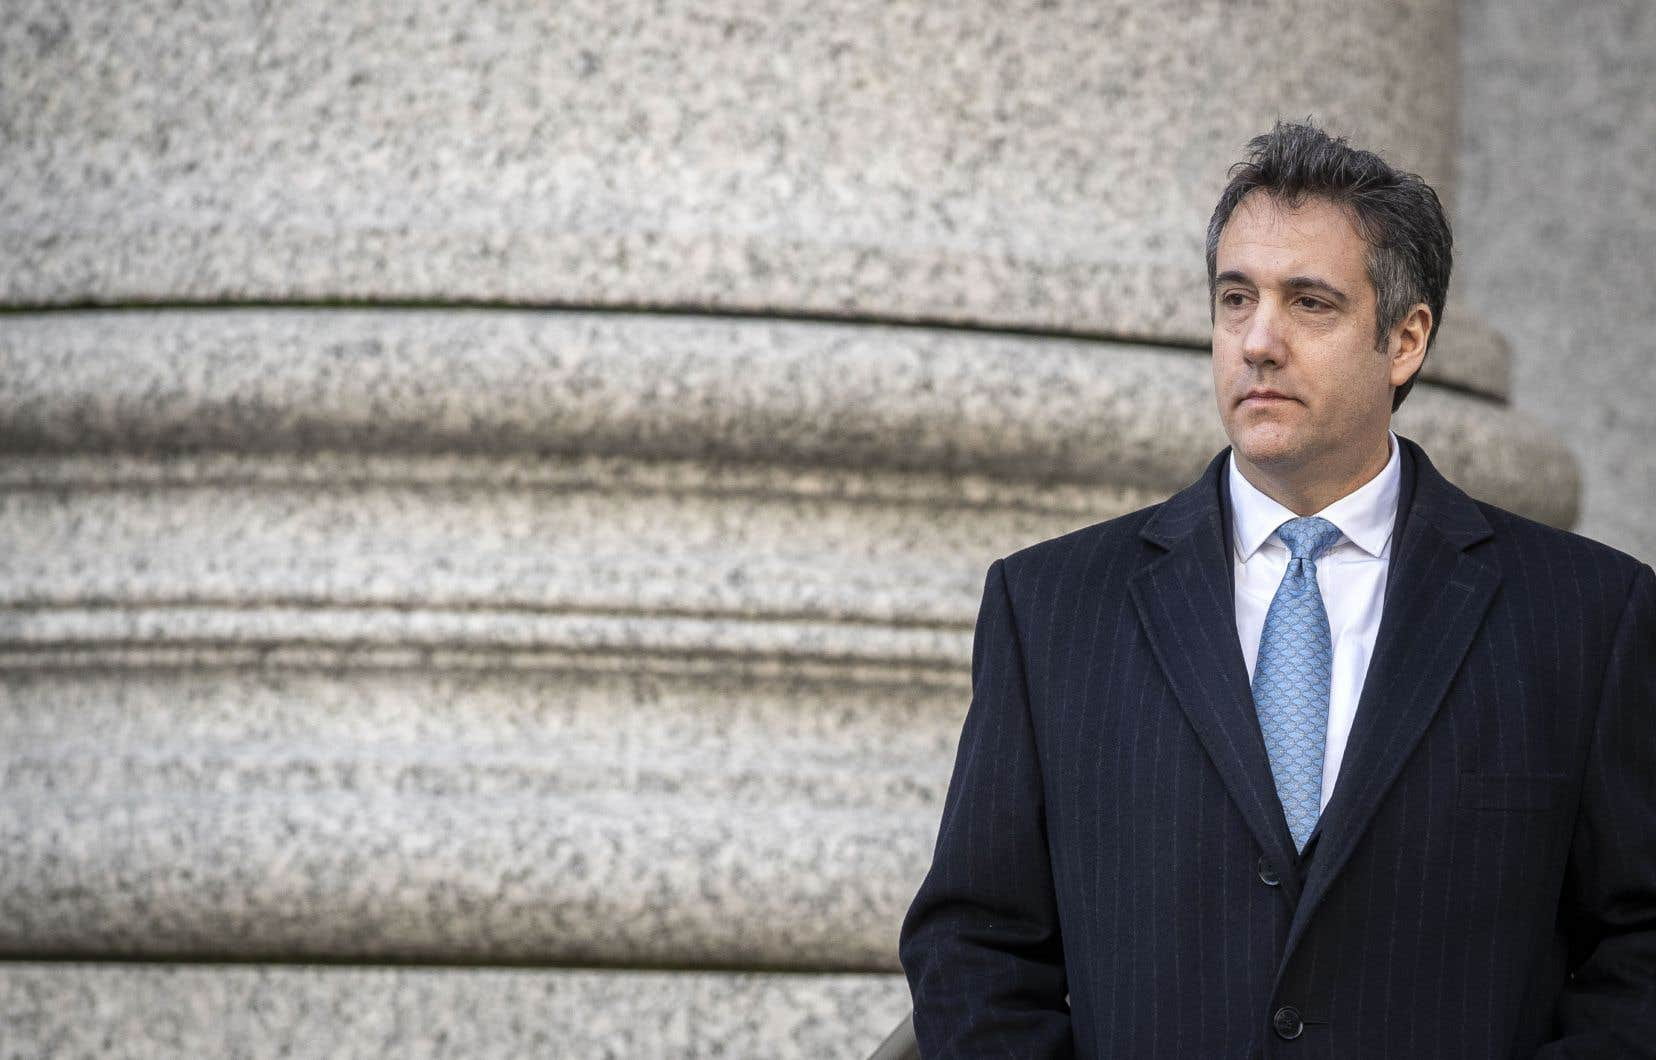 L'ancien avocat personnel de Donald Trump, Michael Cohen